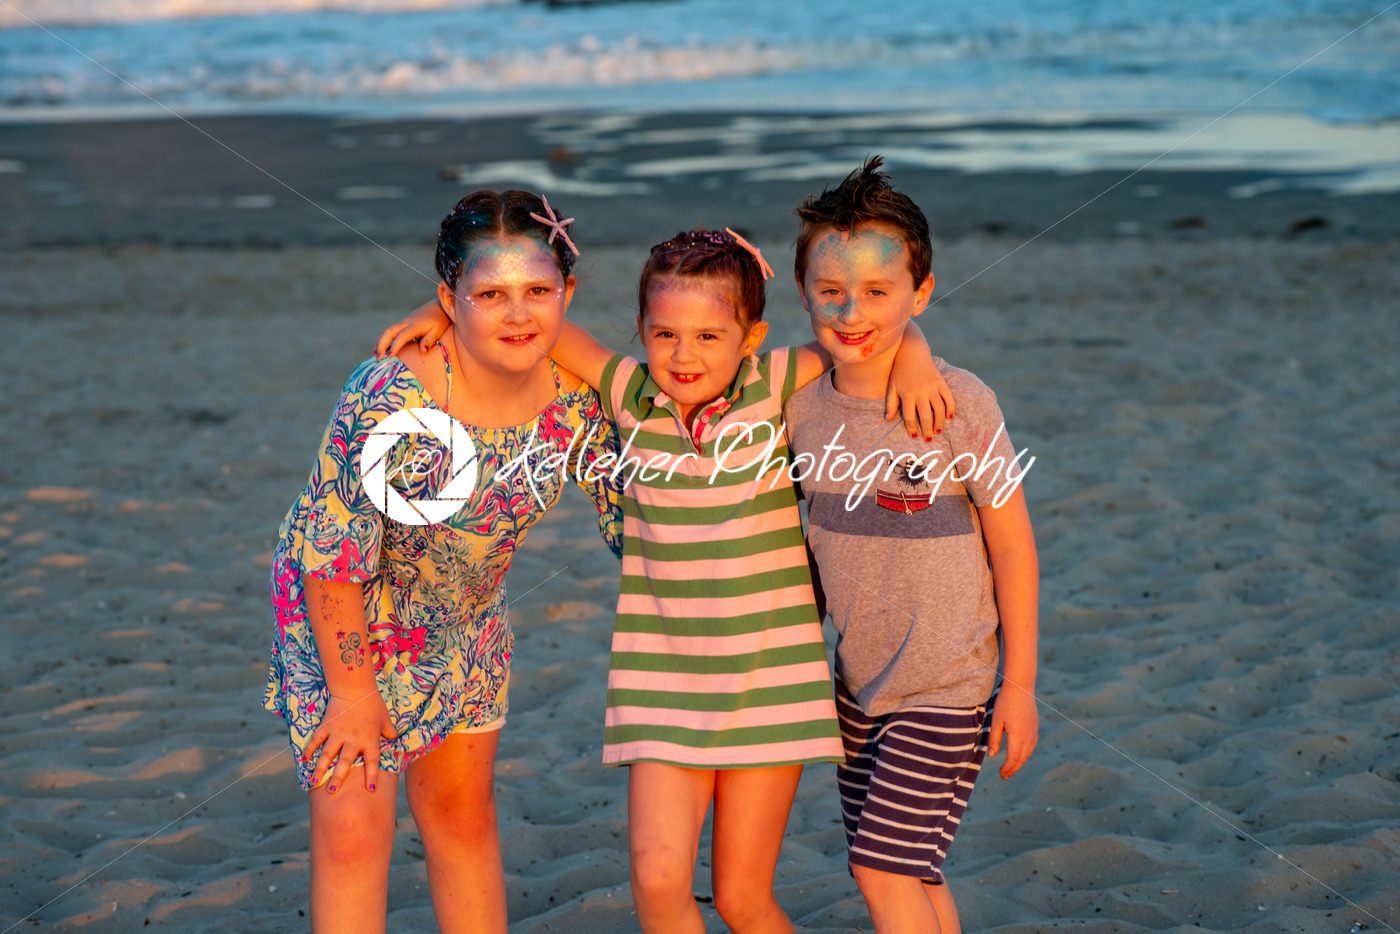 Brother and sisters on beach at sunset during the golden hour - Kelleher Photography Store